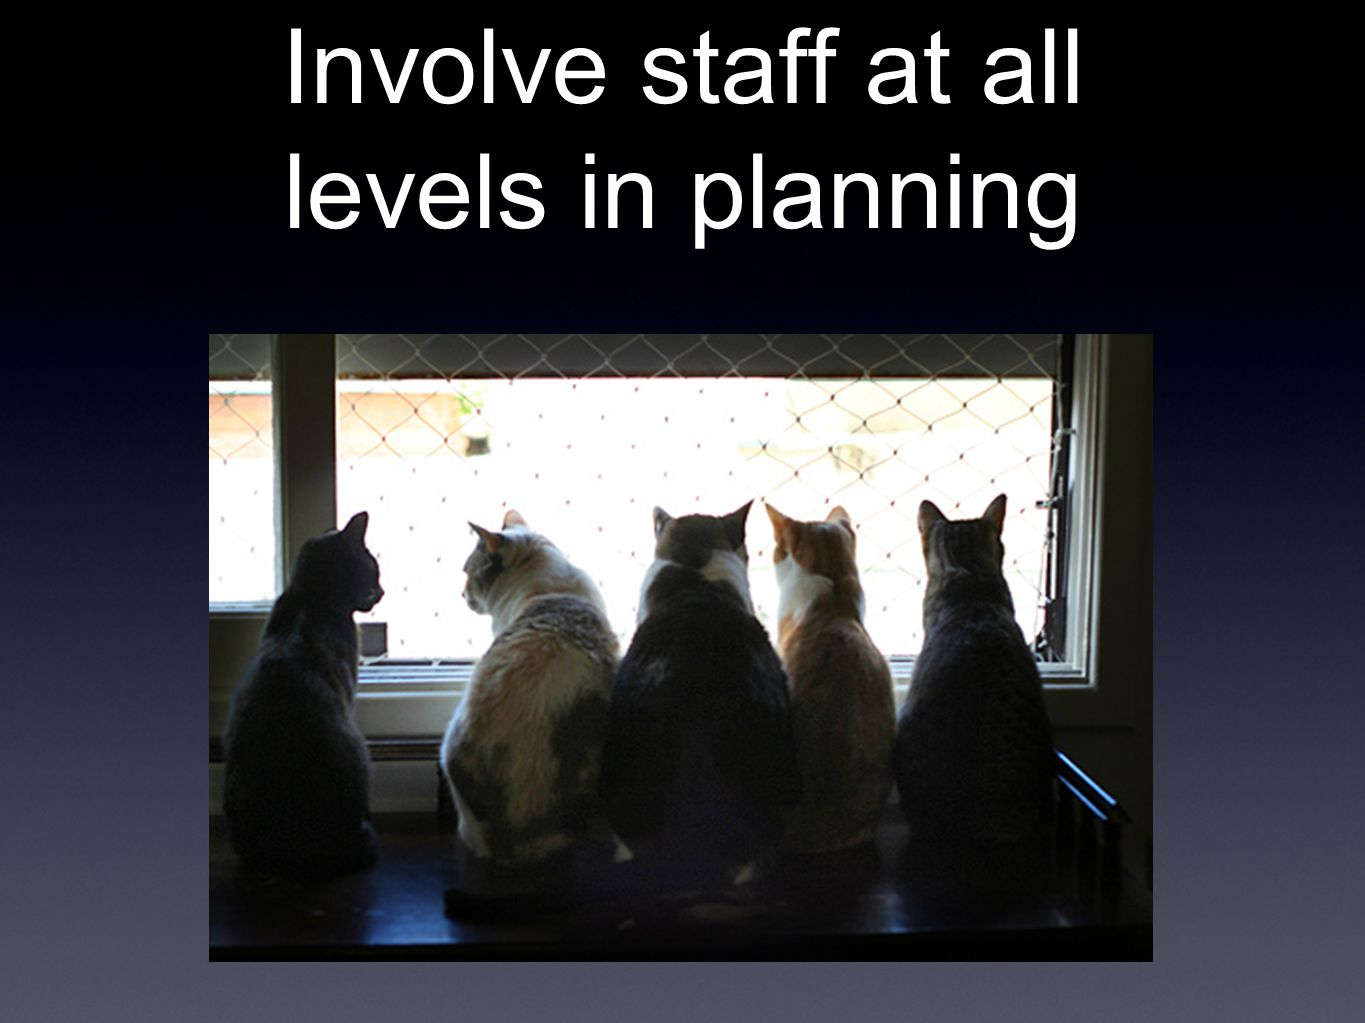 Involve staff at all levels in planning